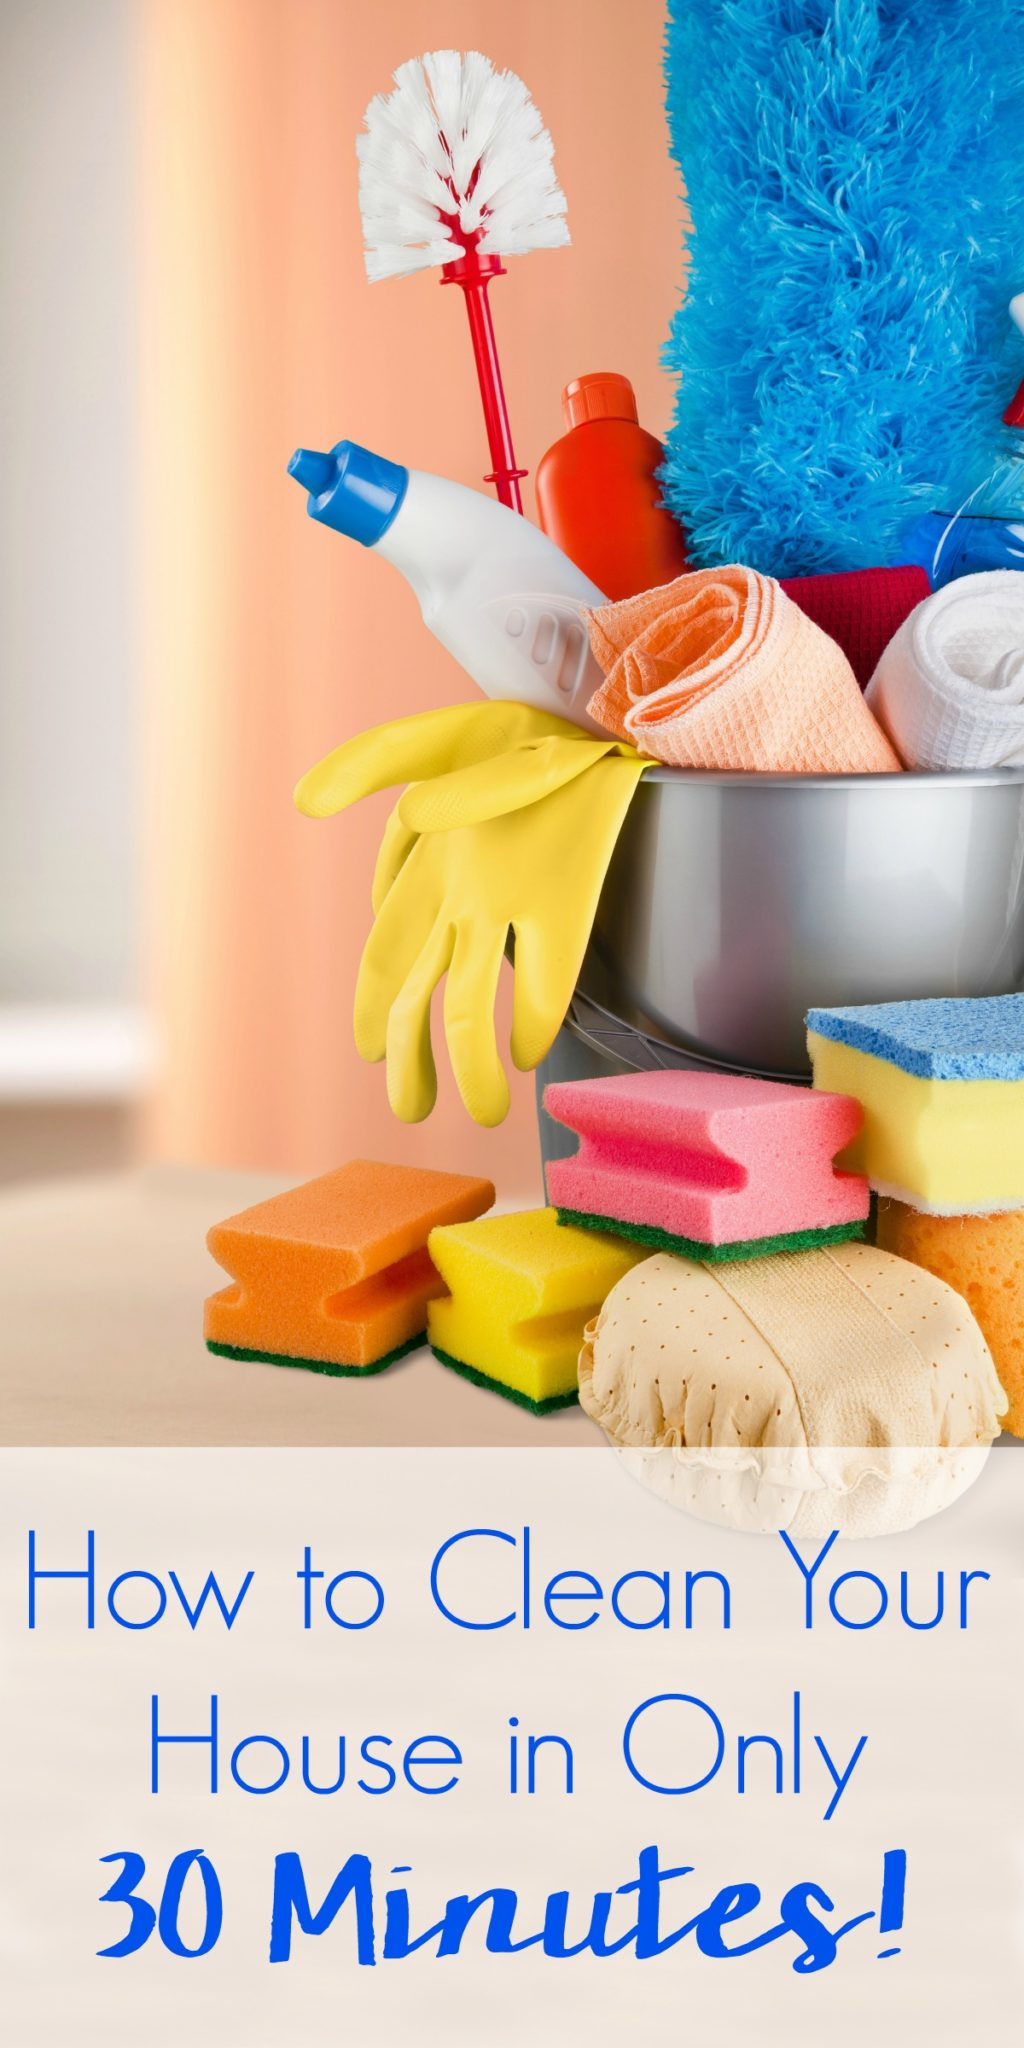 Friends and family stopping by and your house is a wreck? Now it's no problem! Learn How to Clean House in 30 Minutes!